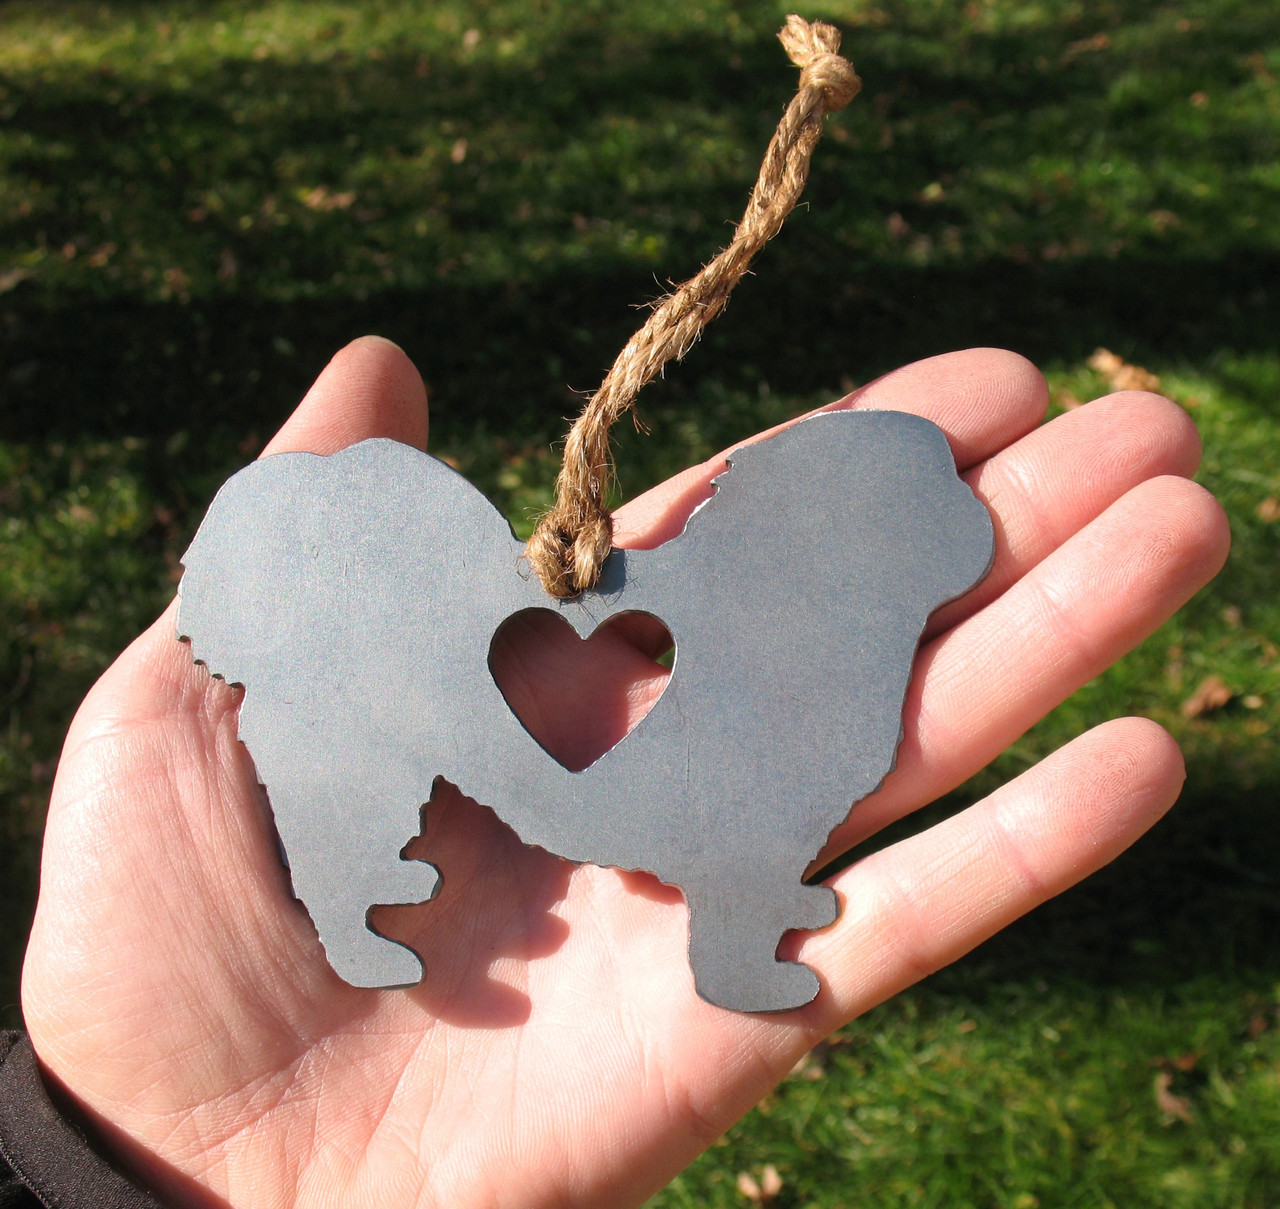 Pekingese Dog Pet Loss Gift Ornament - Pet Memorial - Dog Sympathy Remembrance Gift - Metal Dog Christmas Ornament